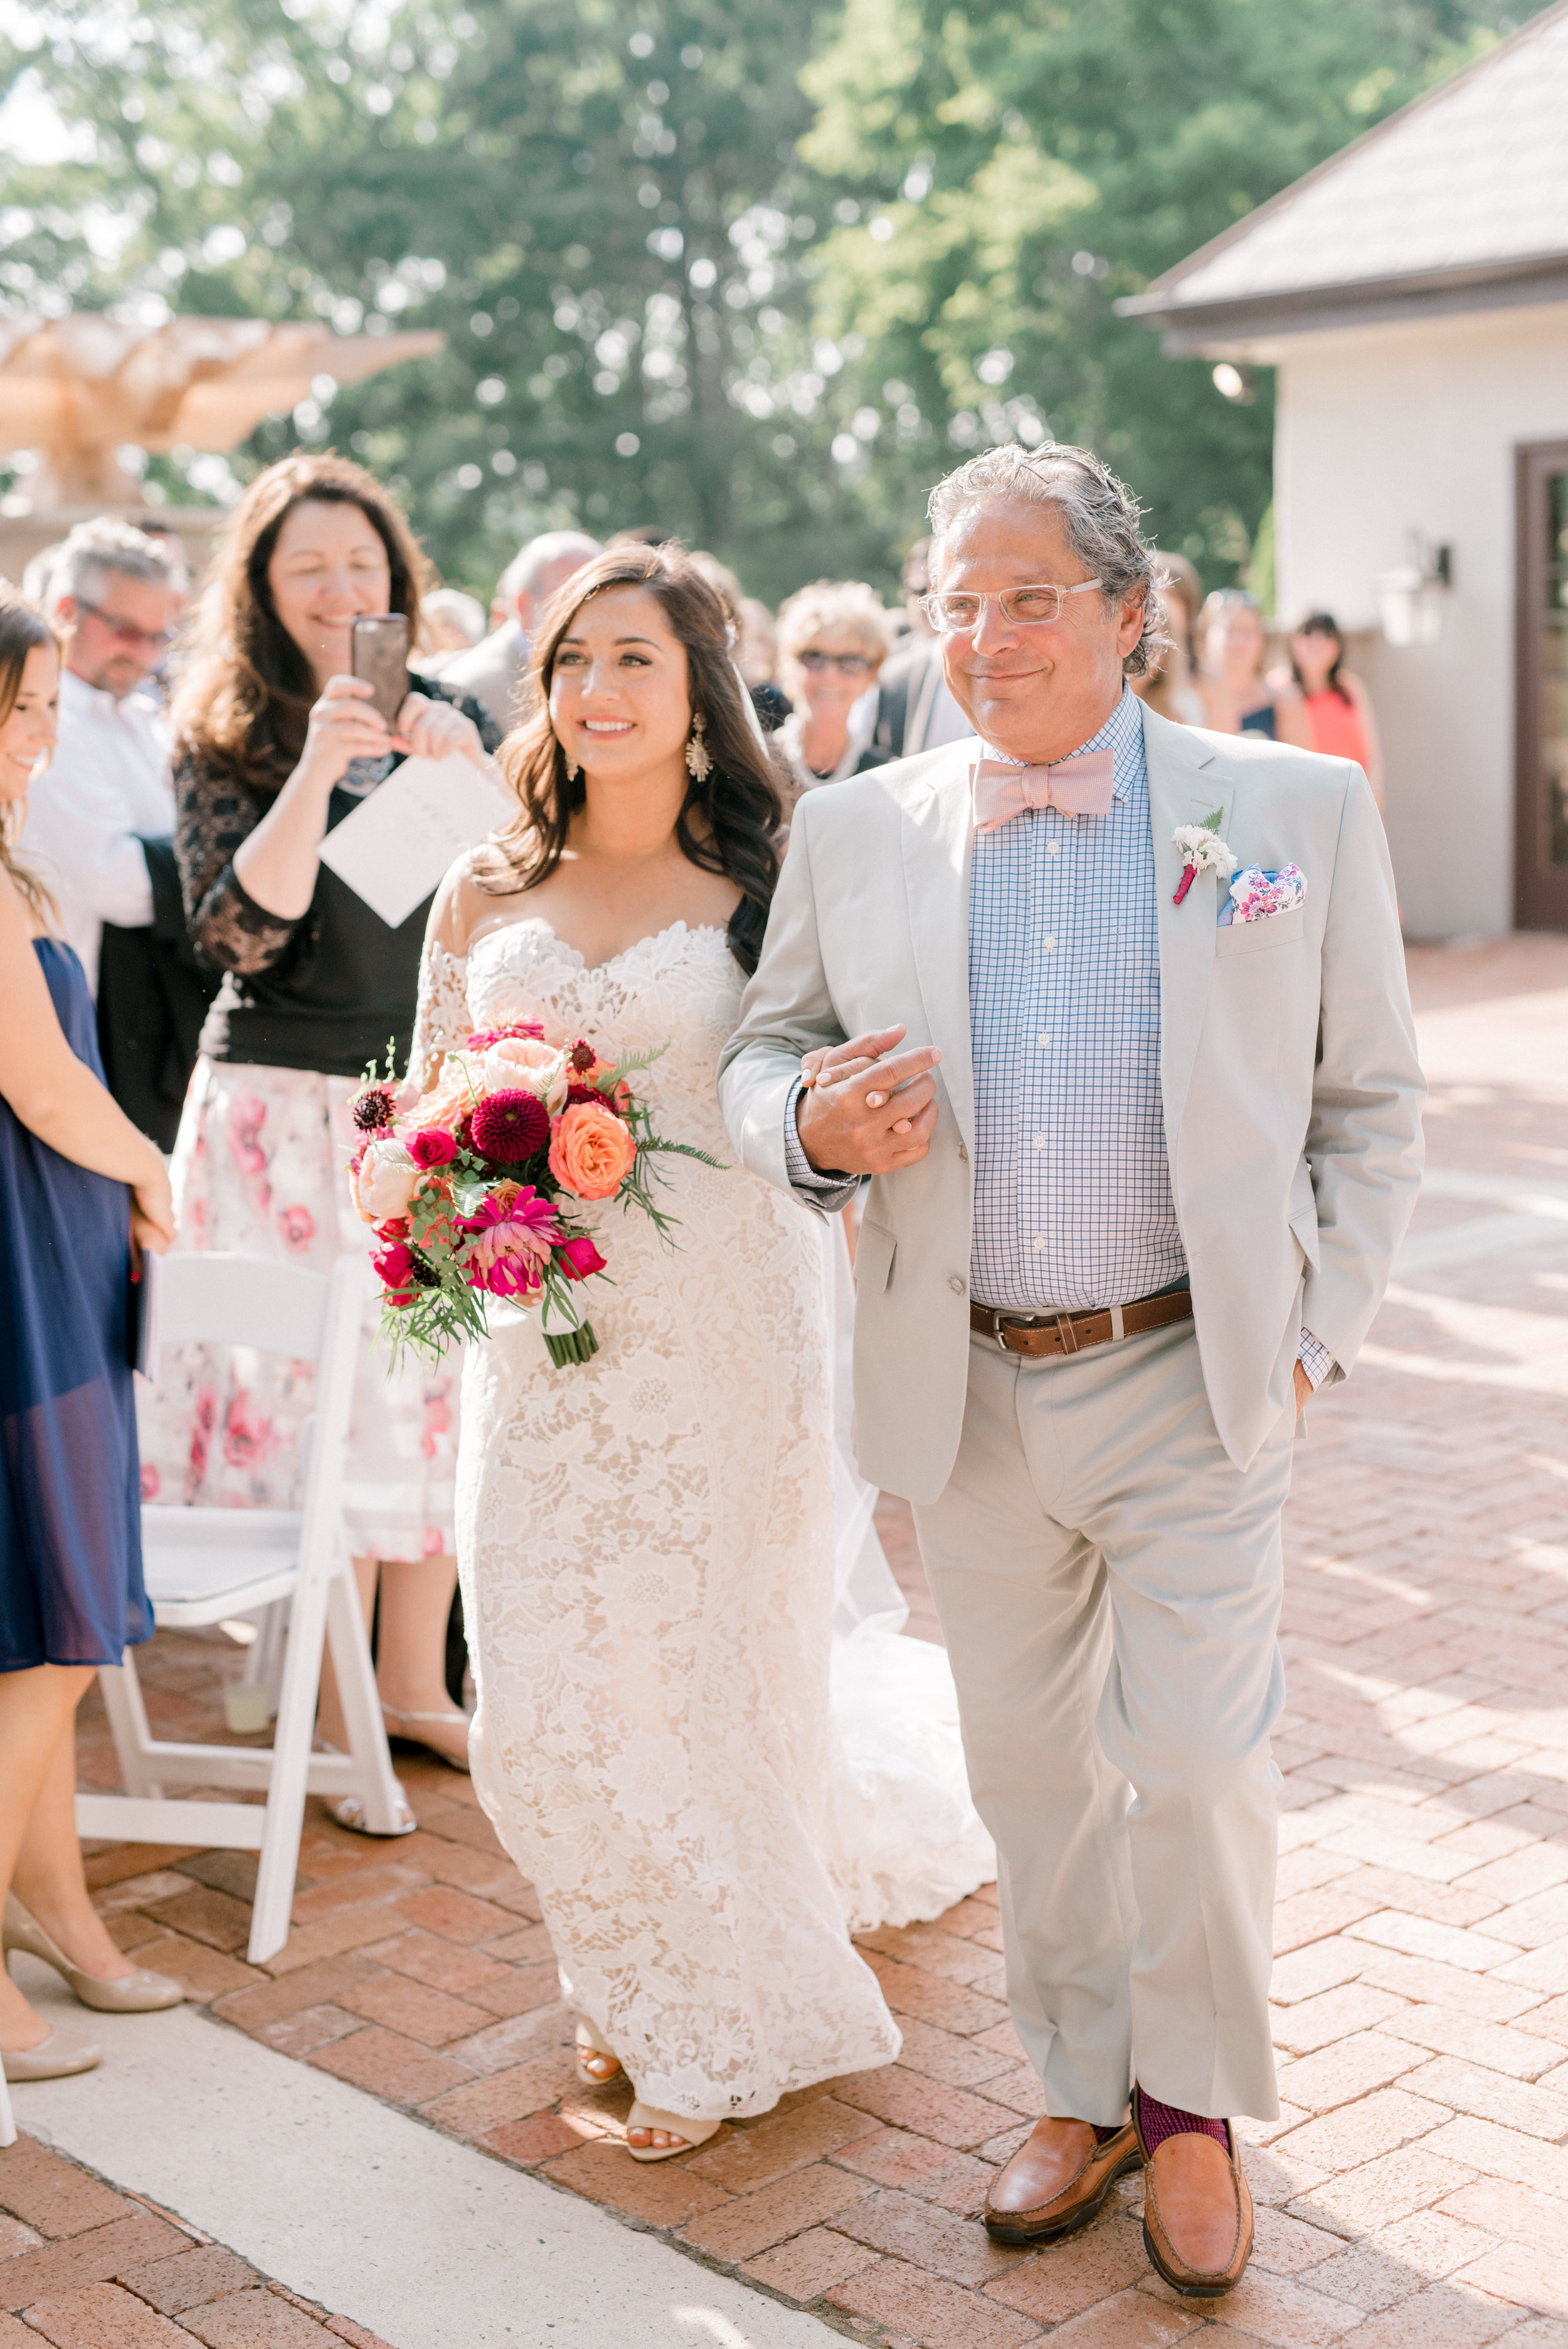 An emotional moment as Lindsey walks down the aisle with her dad for her bright and modern summer wedding day at Hotel du Village.